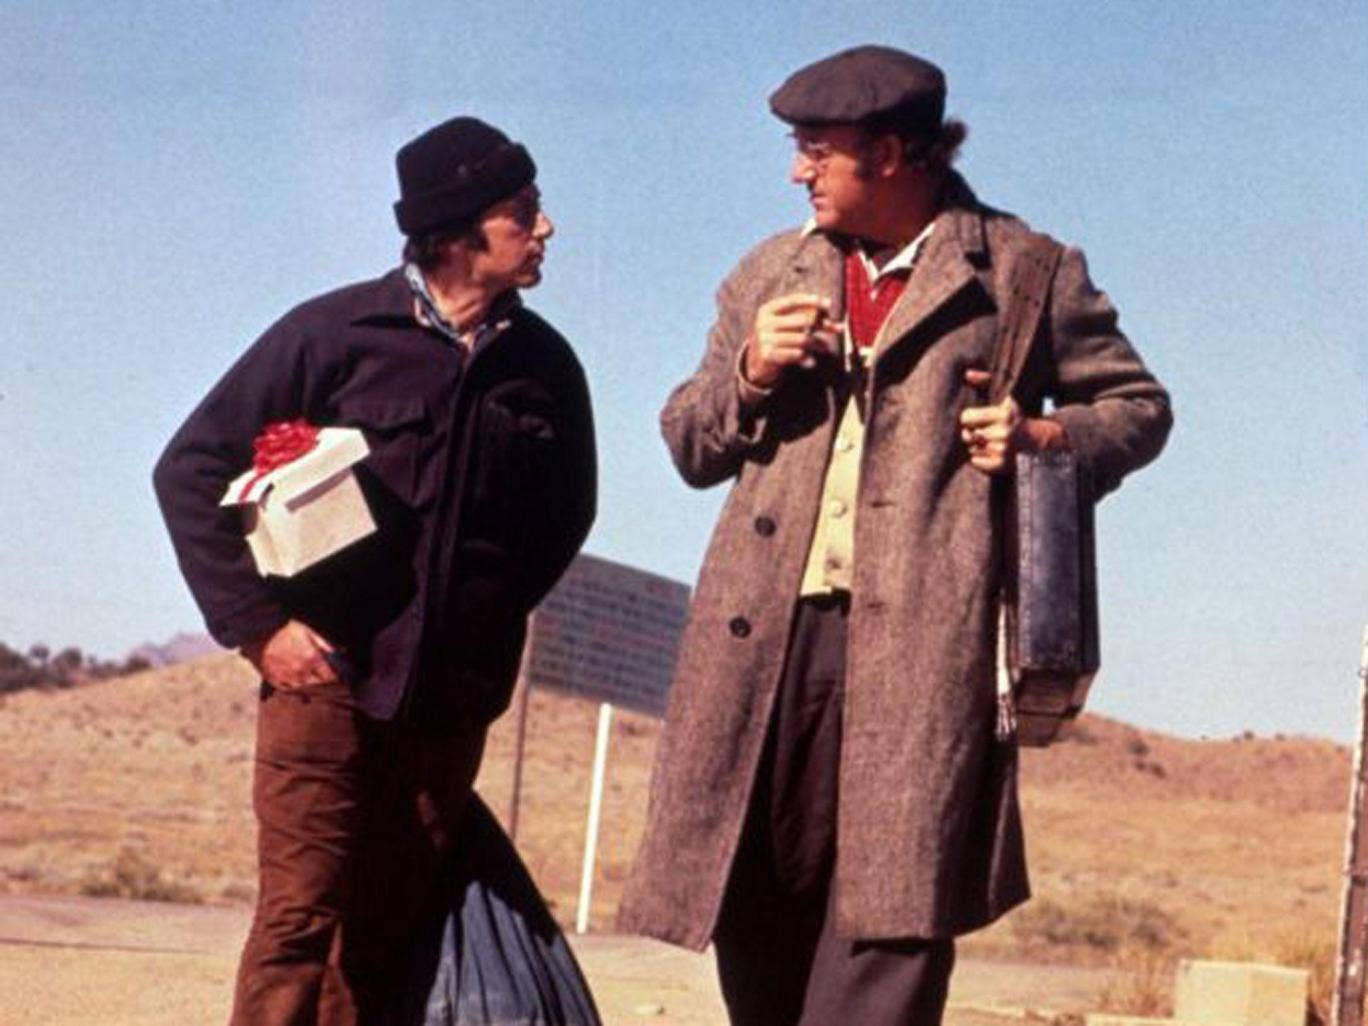 Gene Hackman and Al Pacino in the superior character drama 'Scarecrow'